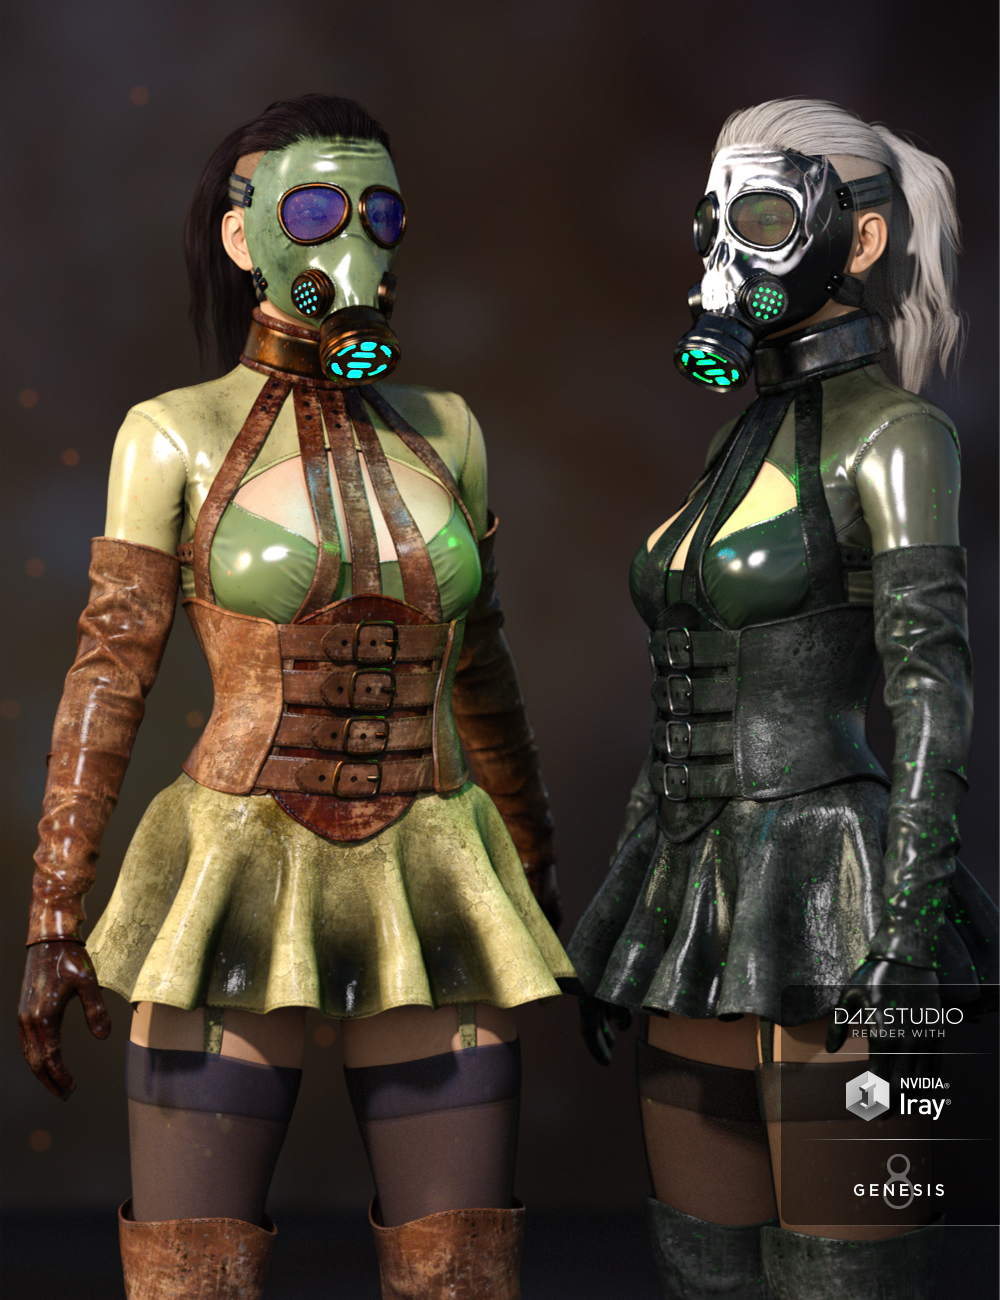 Sasha Outfit Textures by: Demian, 3D Models by Daz 3D